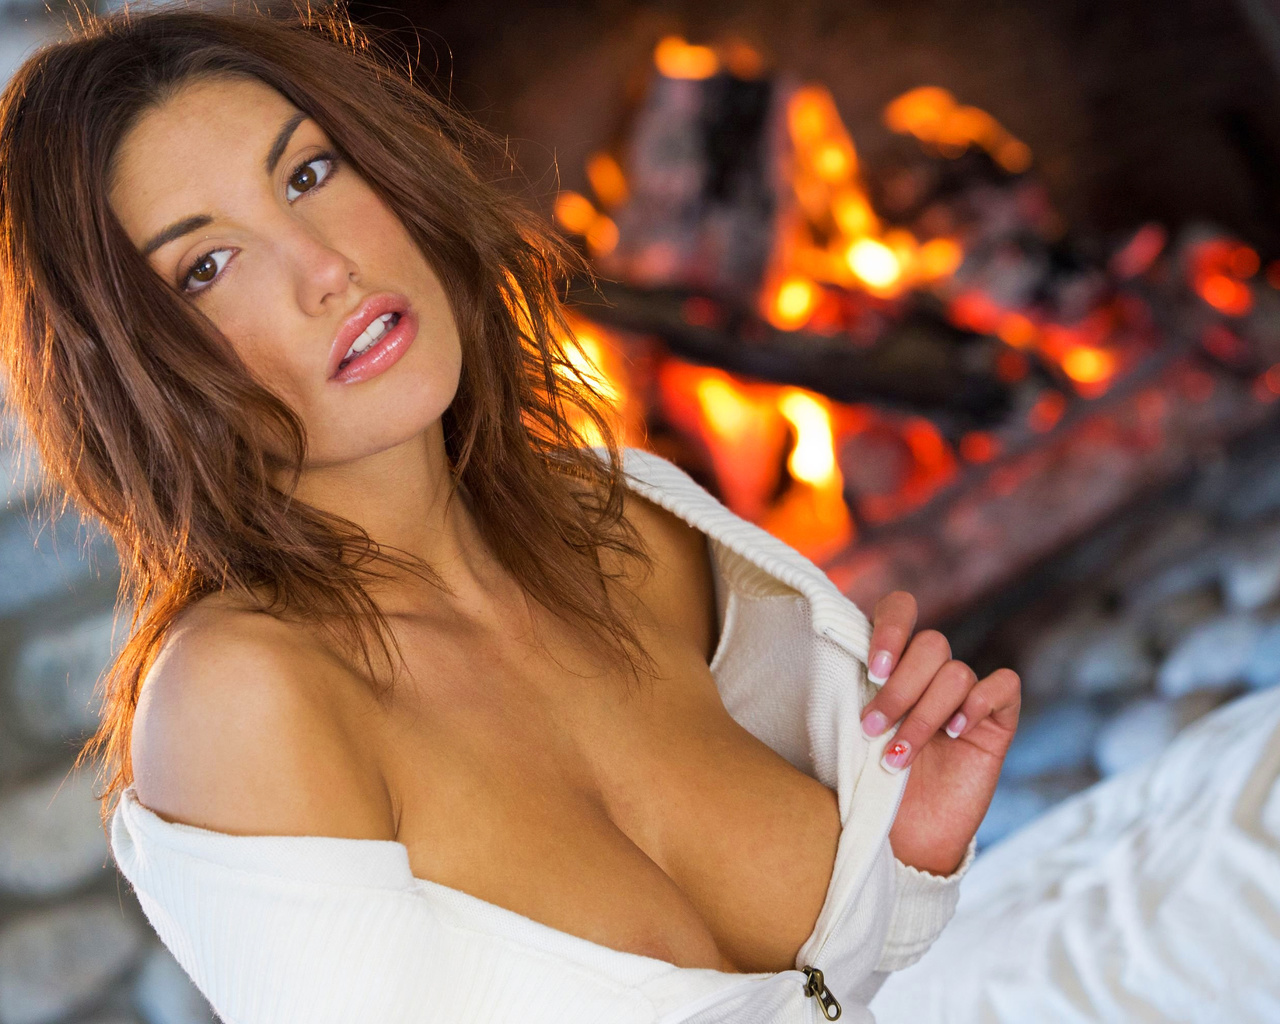 august ames, ames, august, sexy, hot, nude, naked, babes, babe, female, girl, women, beautiful, face, cute, eyes, lips, ass, butt, buttocks, hips, pant, panties, panty, bend, bottoms, boobs, legs, breast, busty, bust, tits, huge, arms, pussy, vagina, ass,